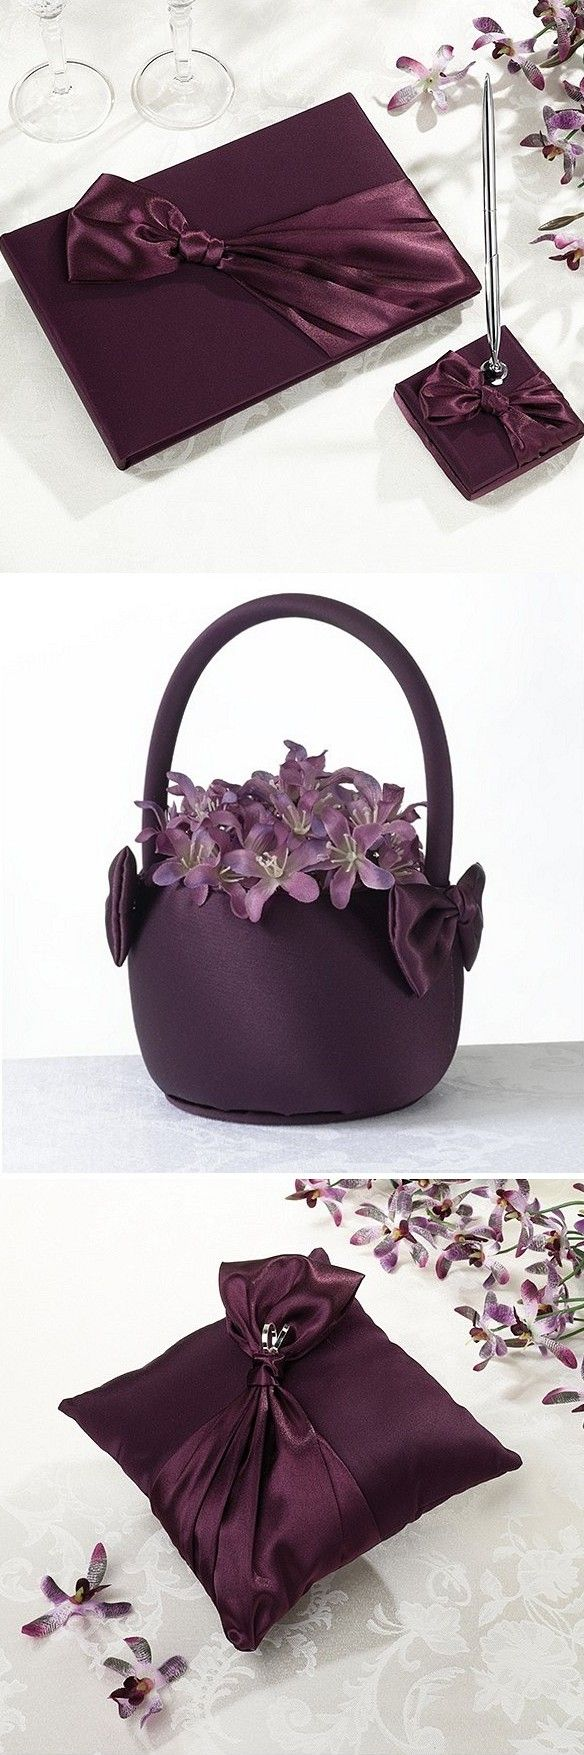 124 best flower girl baskets images on pinterest flower girl shop purple wedding accessories including guest books pen holders flower girl baskets ring bearer pillows and garters covered in luxurious plum purple izmirmasajfo Images